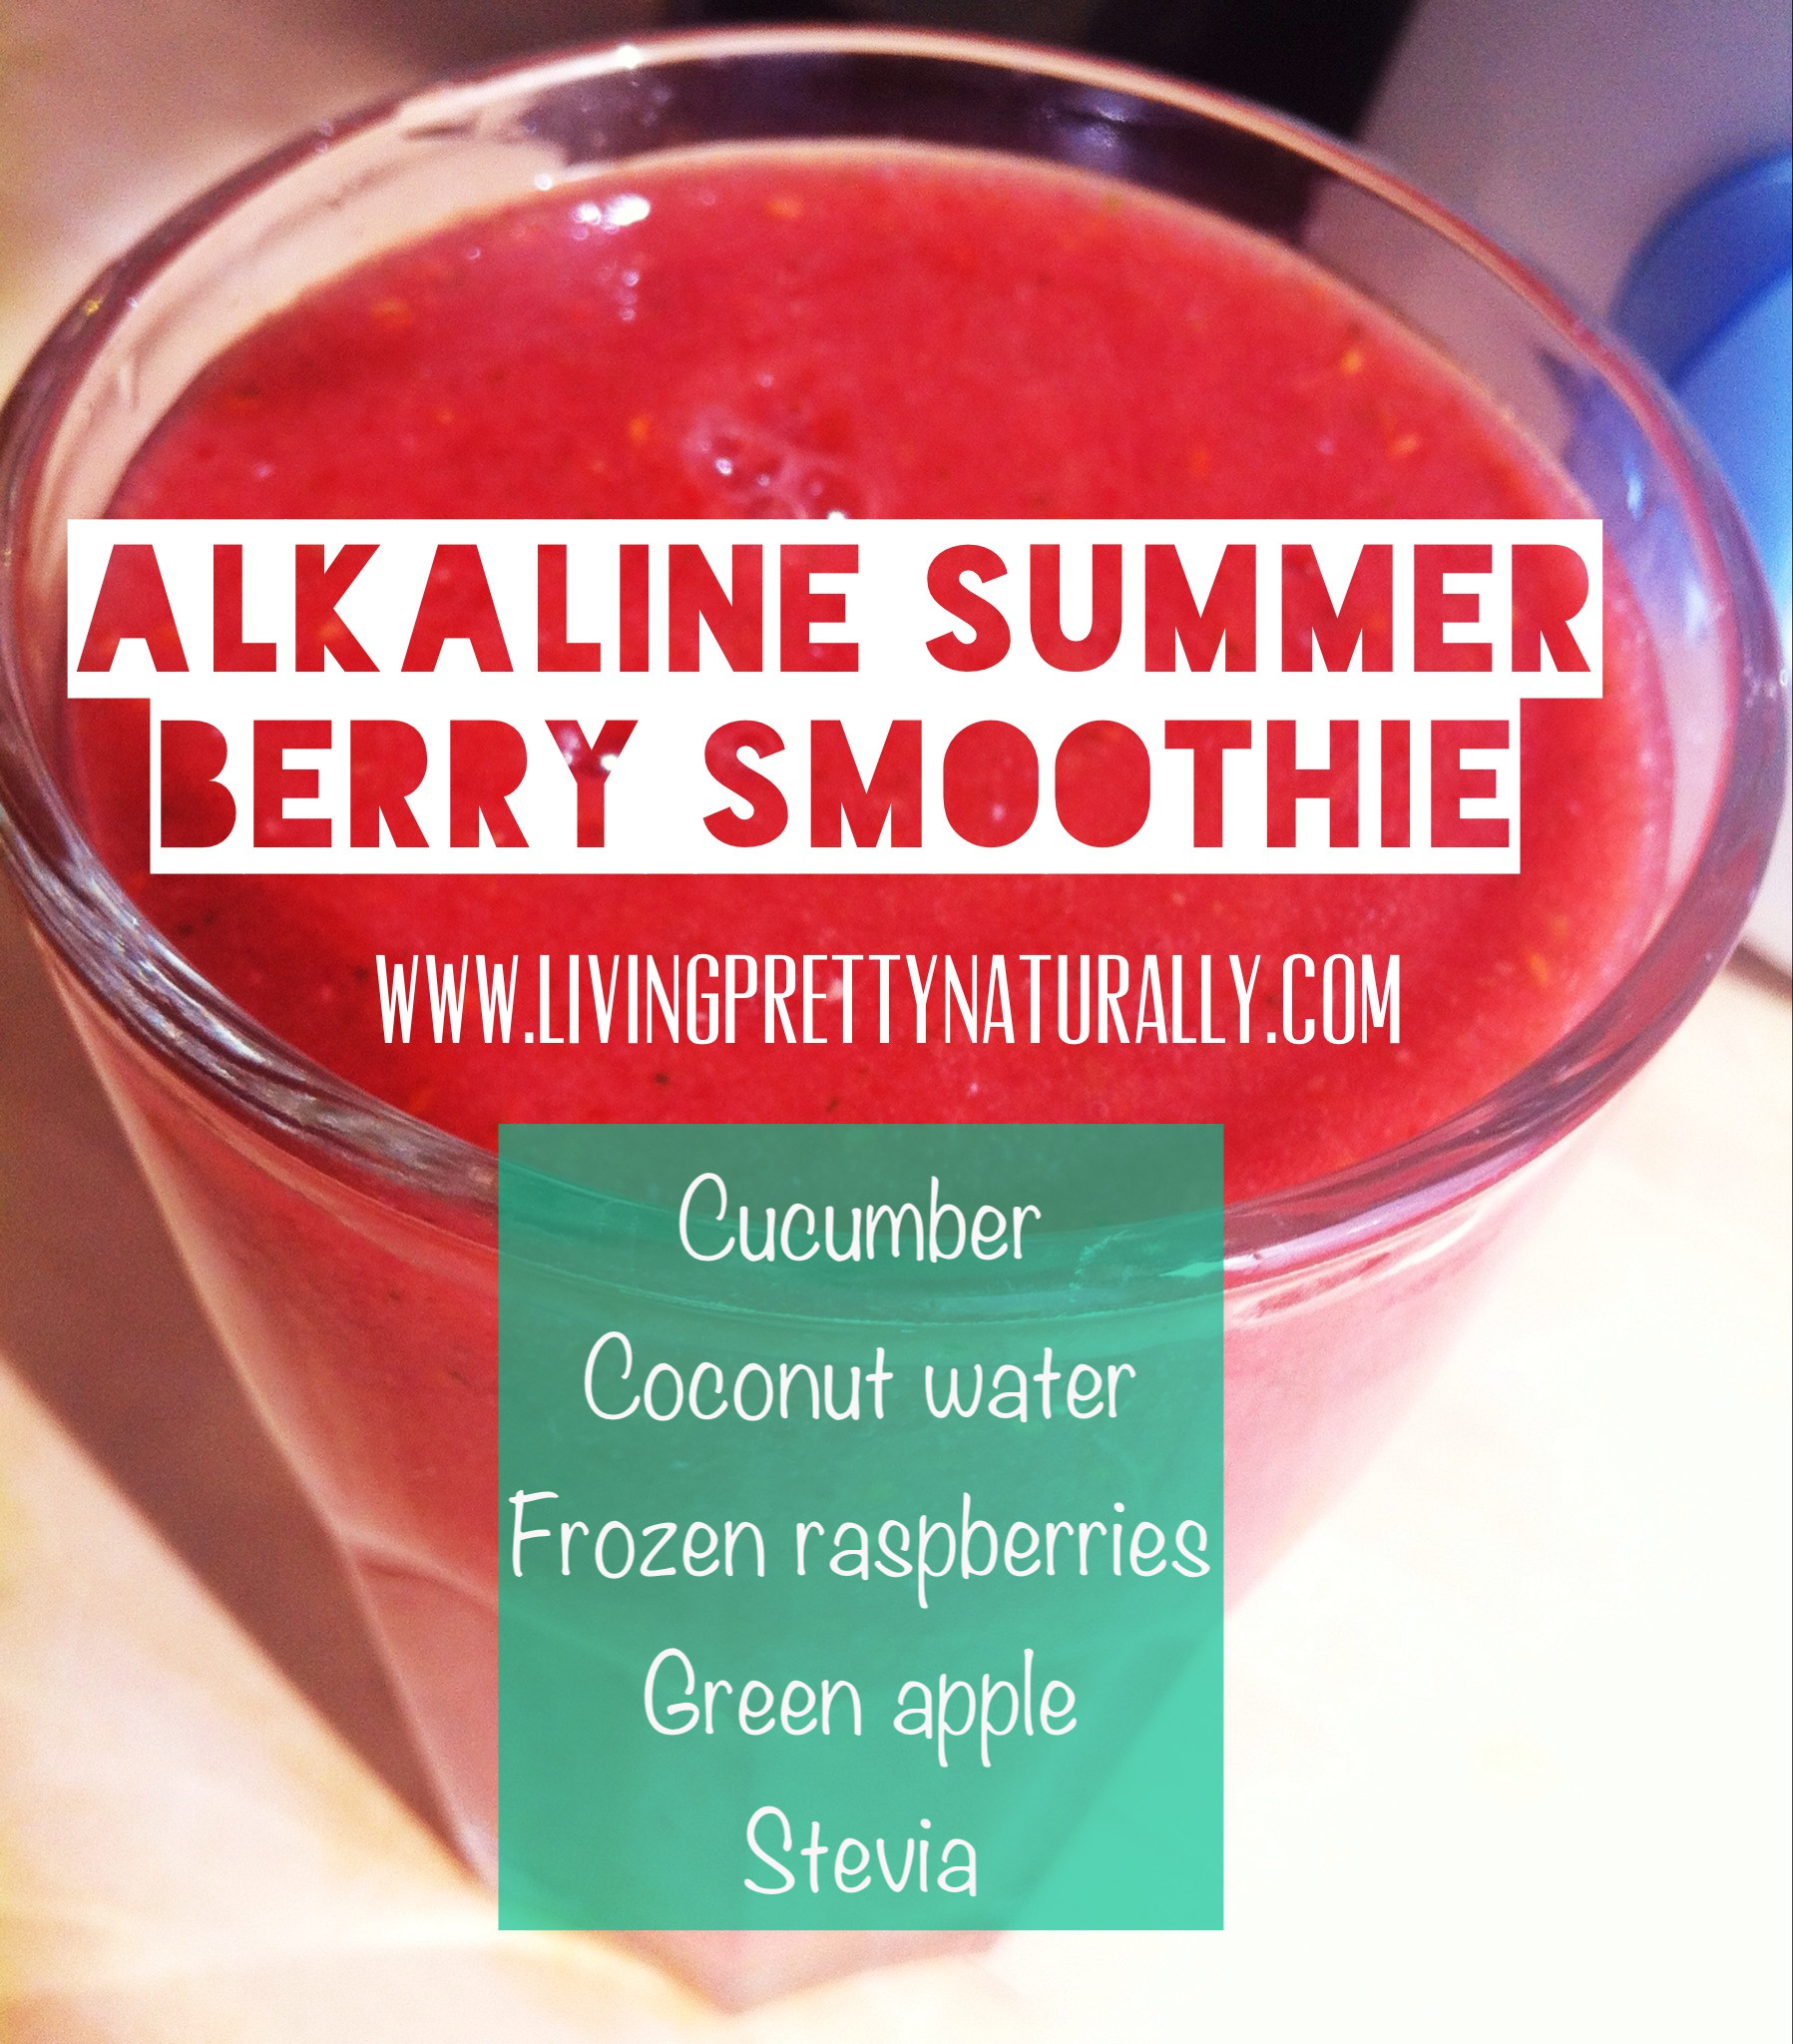 Summer Smoothies Recipes  LPN Smoothie Recipes Super Alkaline Summer Berry Smoothie